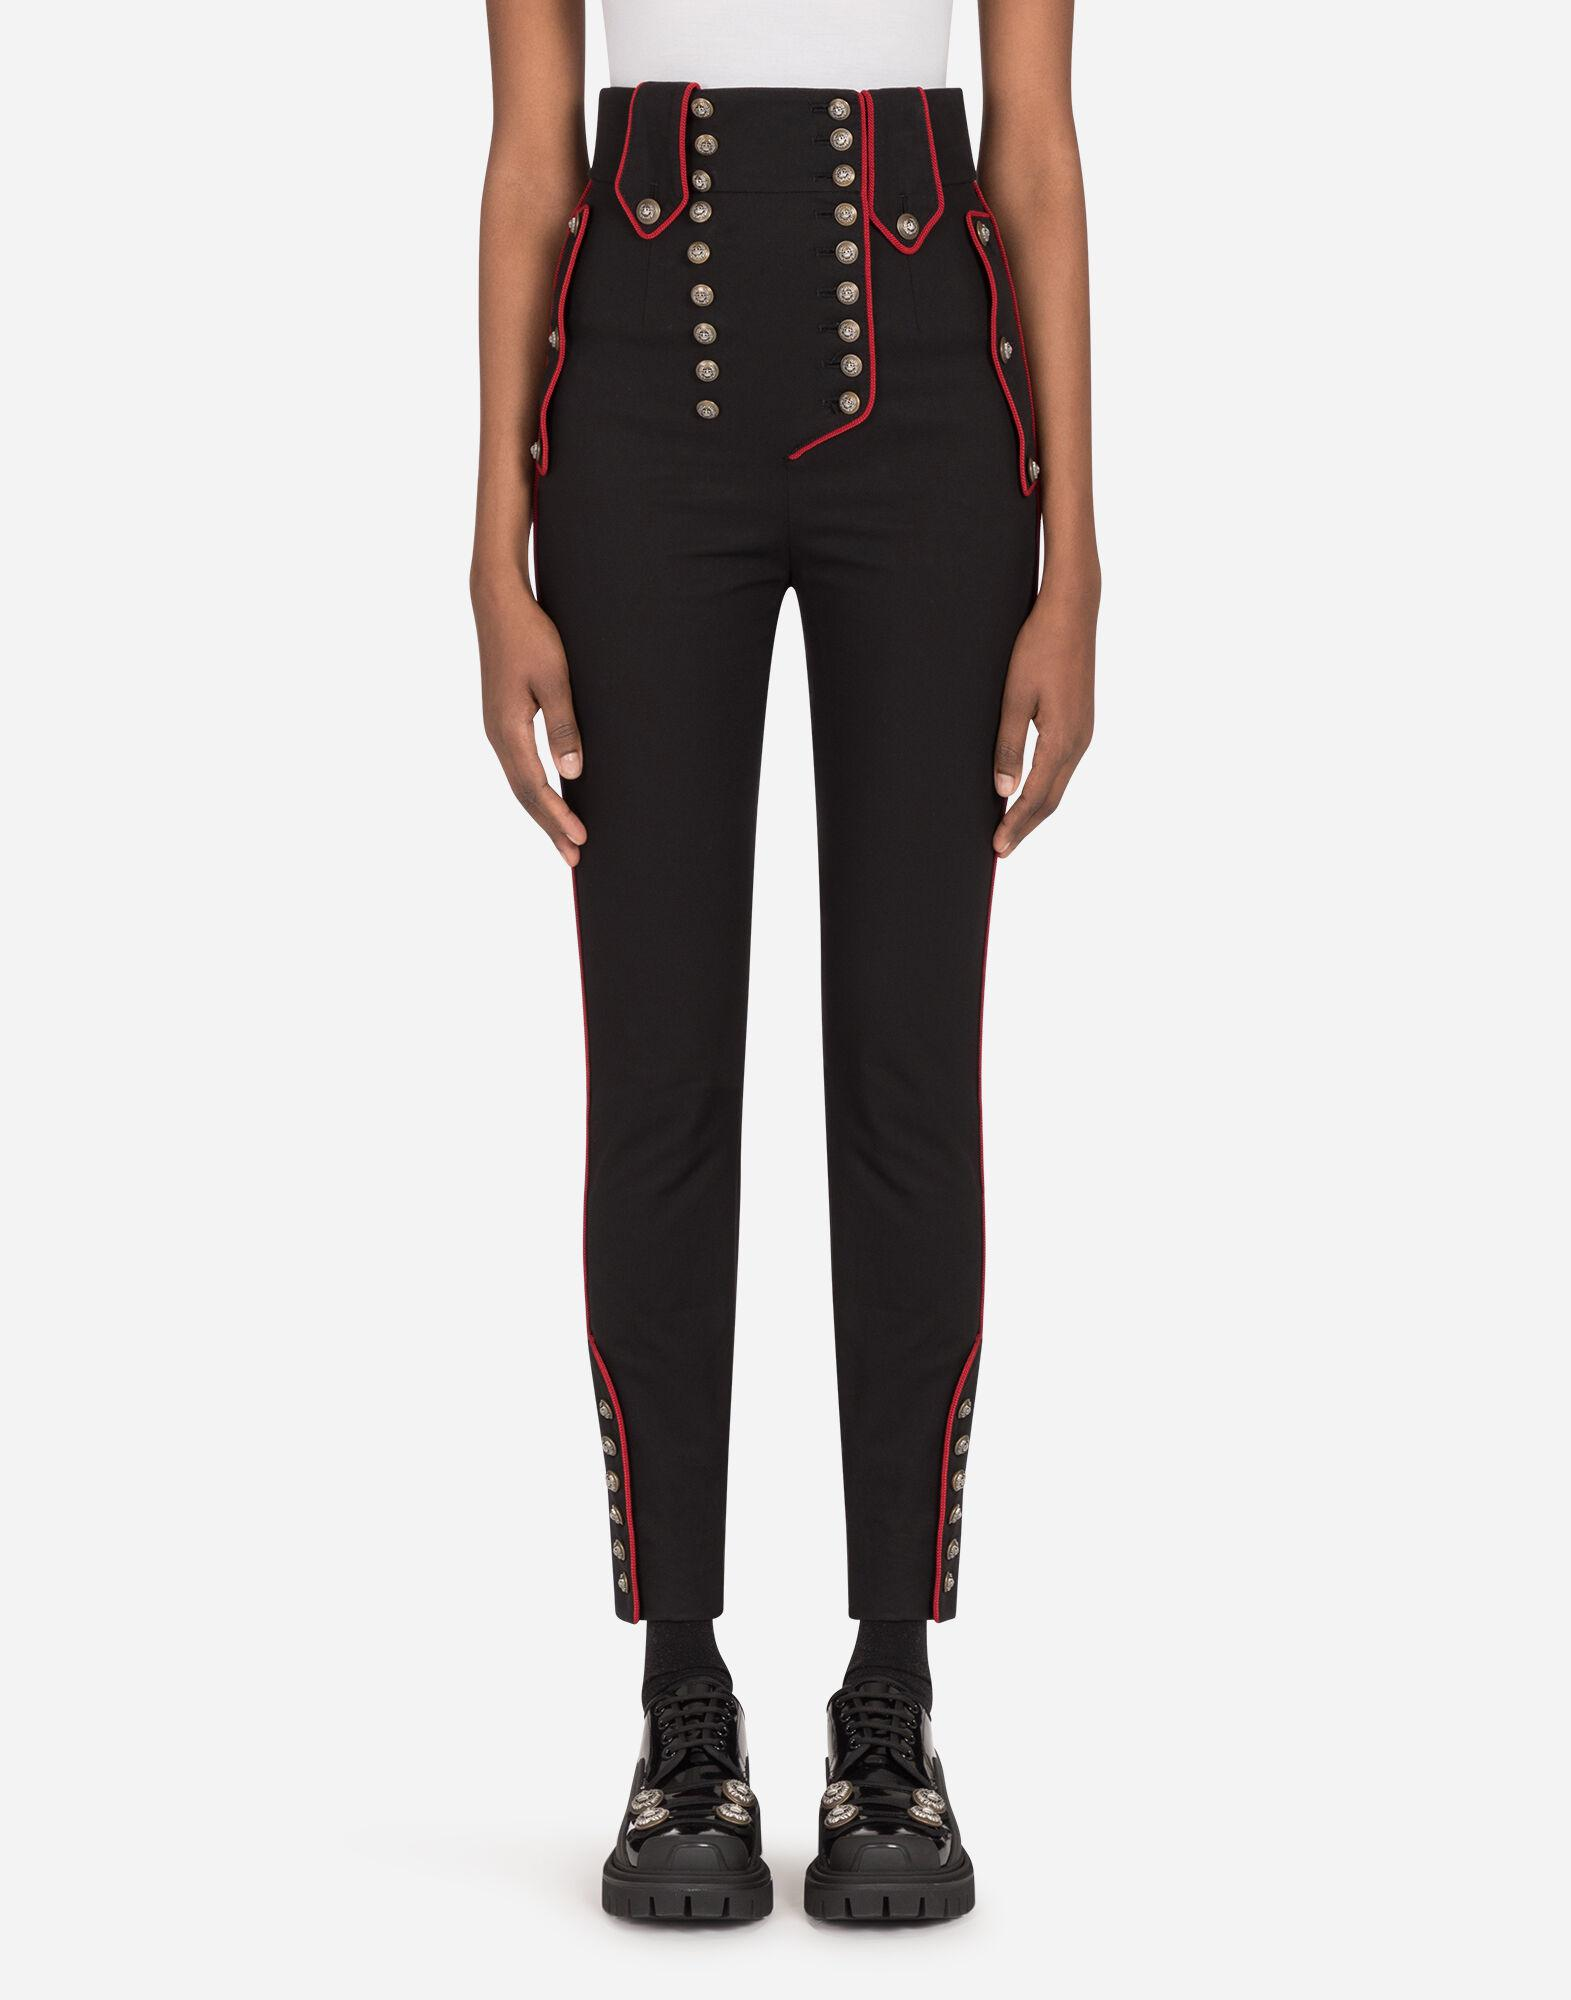 High-waisted cotton pants with military details